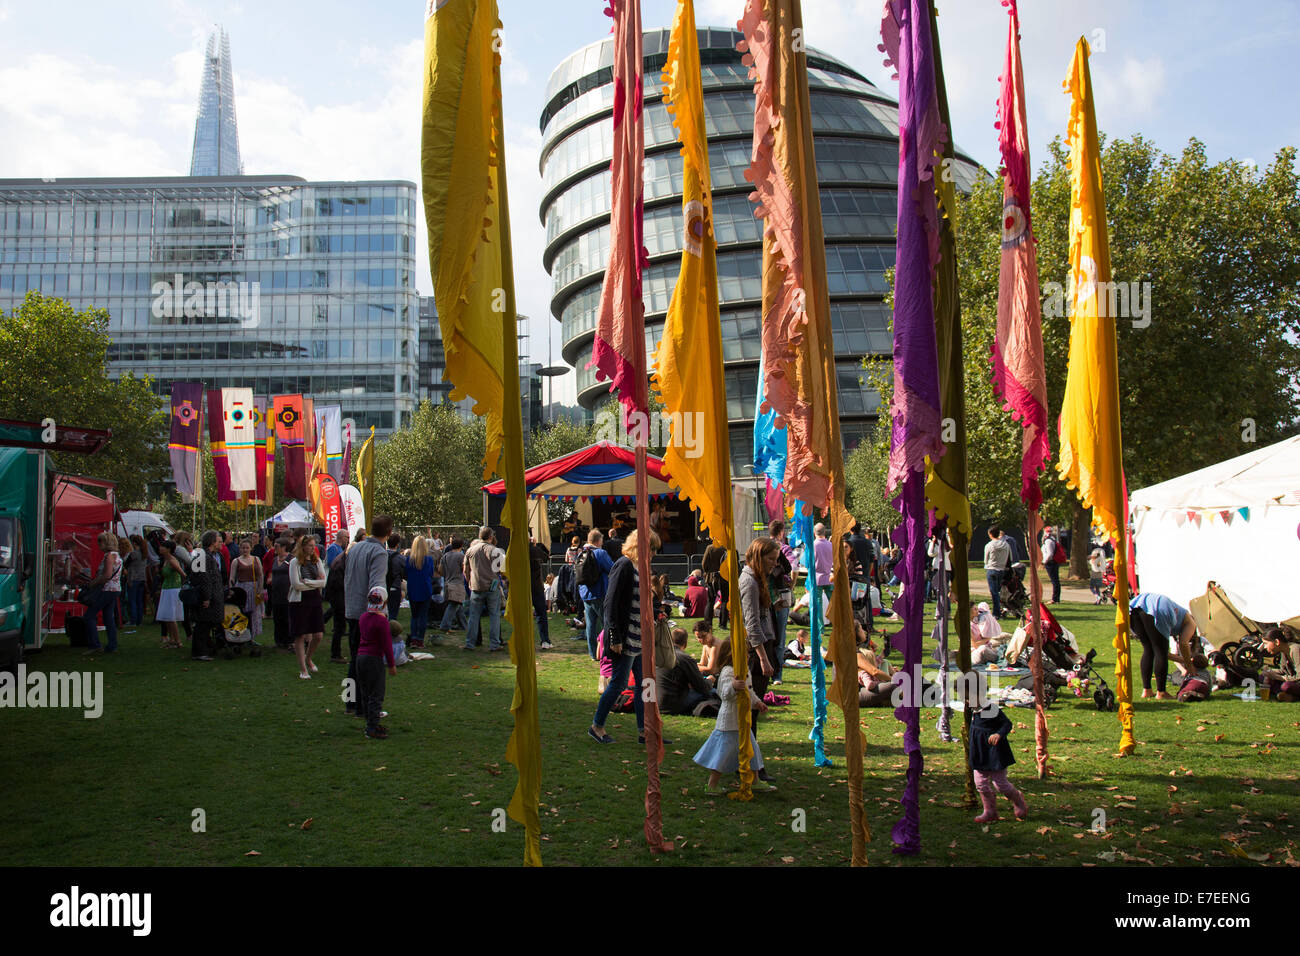 People gathering to hang out, listen to bands and other activities at the Blue Ribbon Village. Thames Festival London Stock Photo